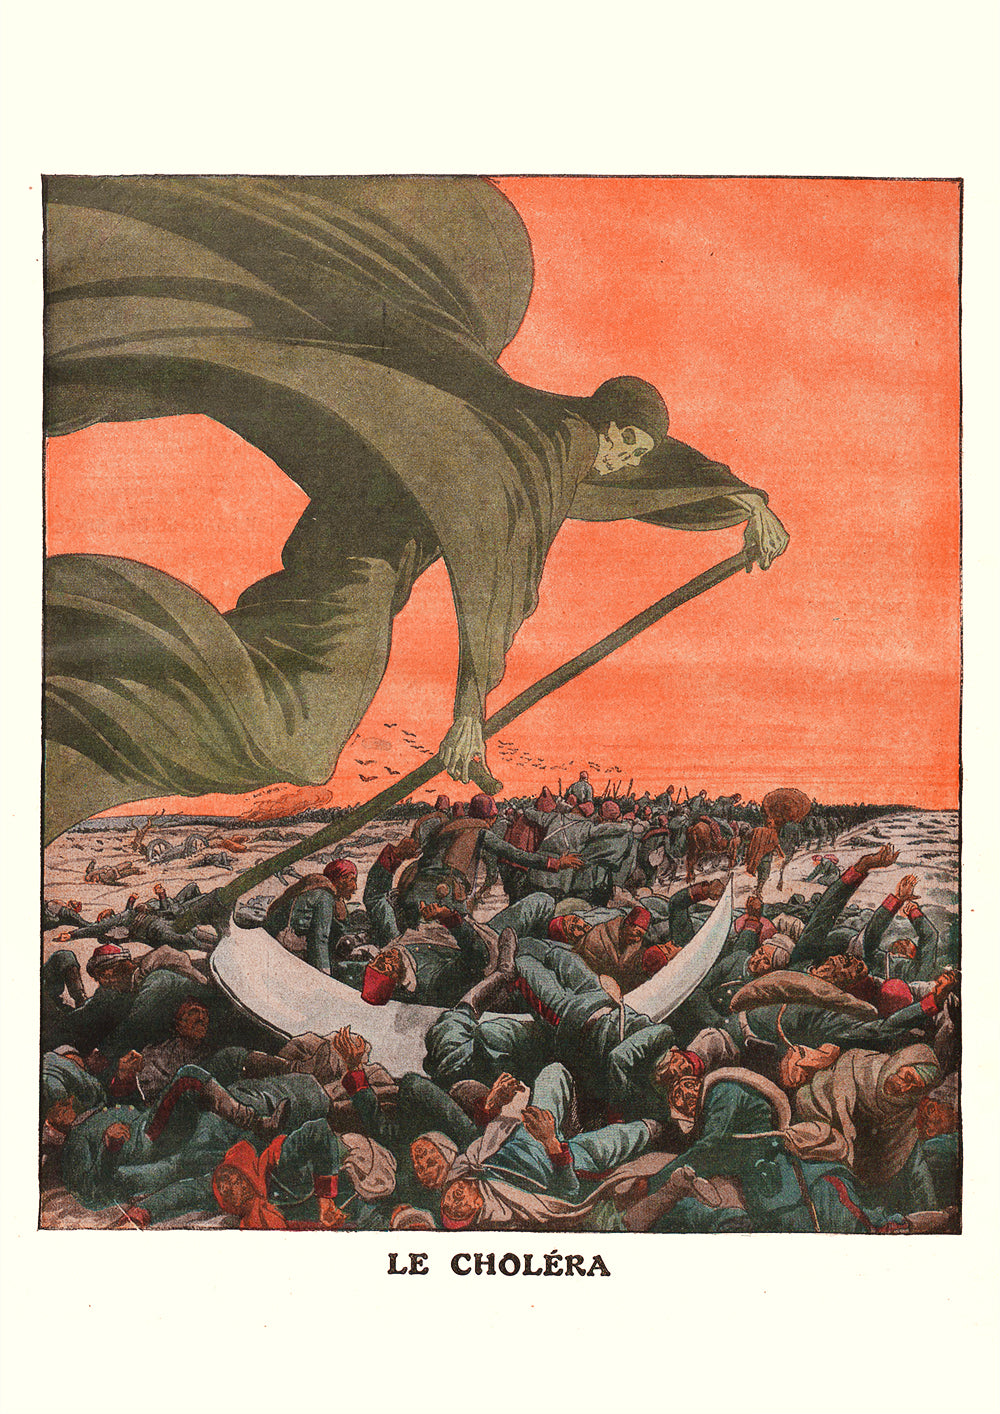 Cholera – French newspaper cover